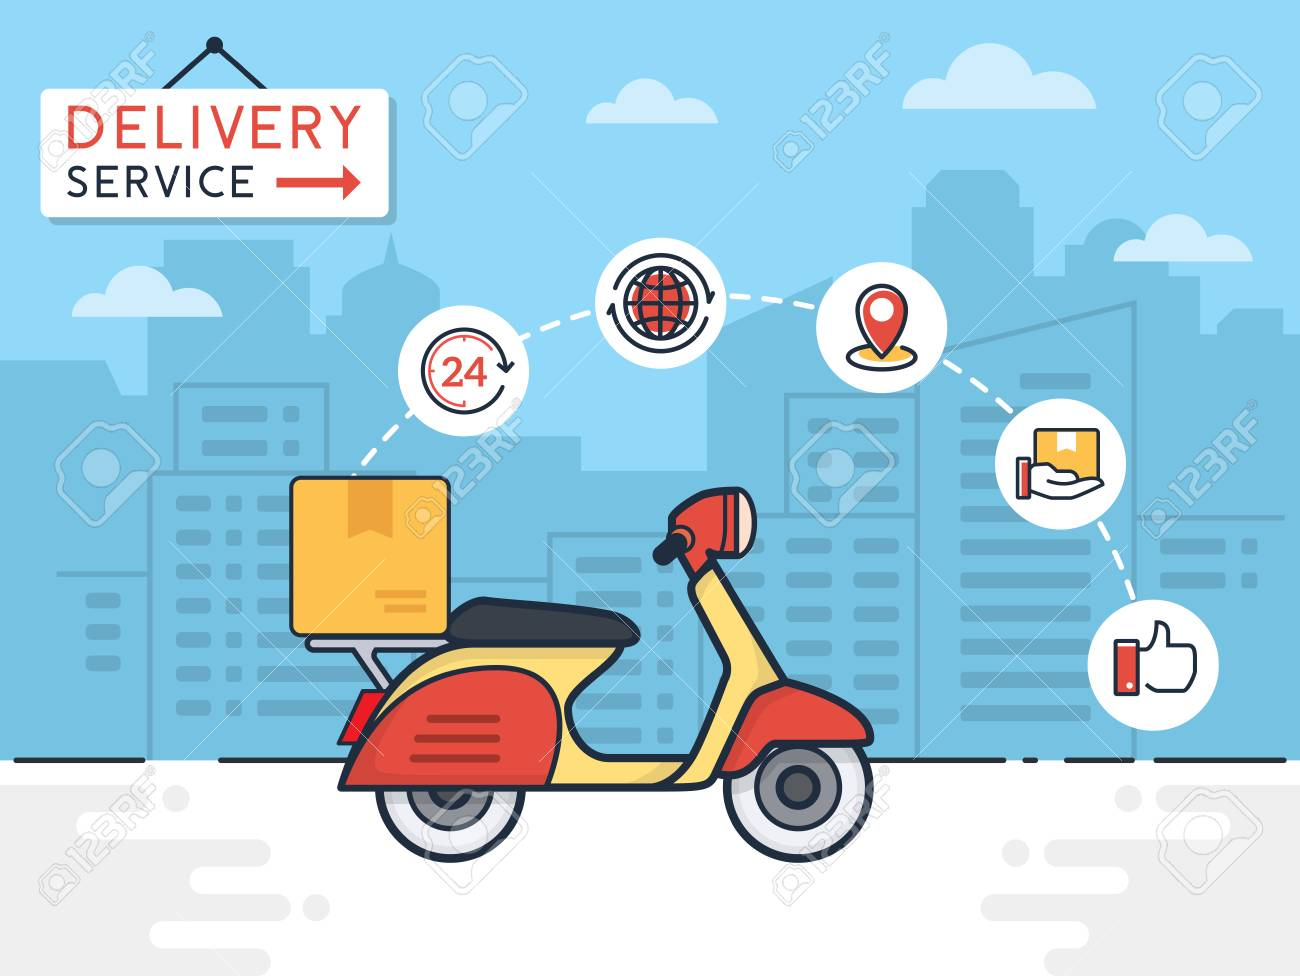 Delivery vector illustration. Delivery service with scooter motorcycle and cardboard boxes on city background. Delivery 24 hour concept. - 92934859